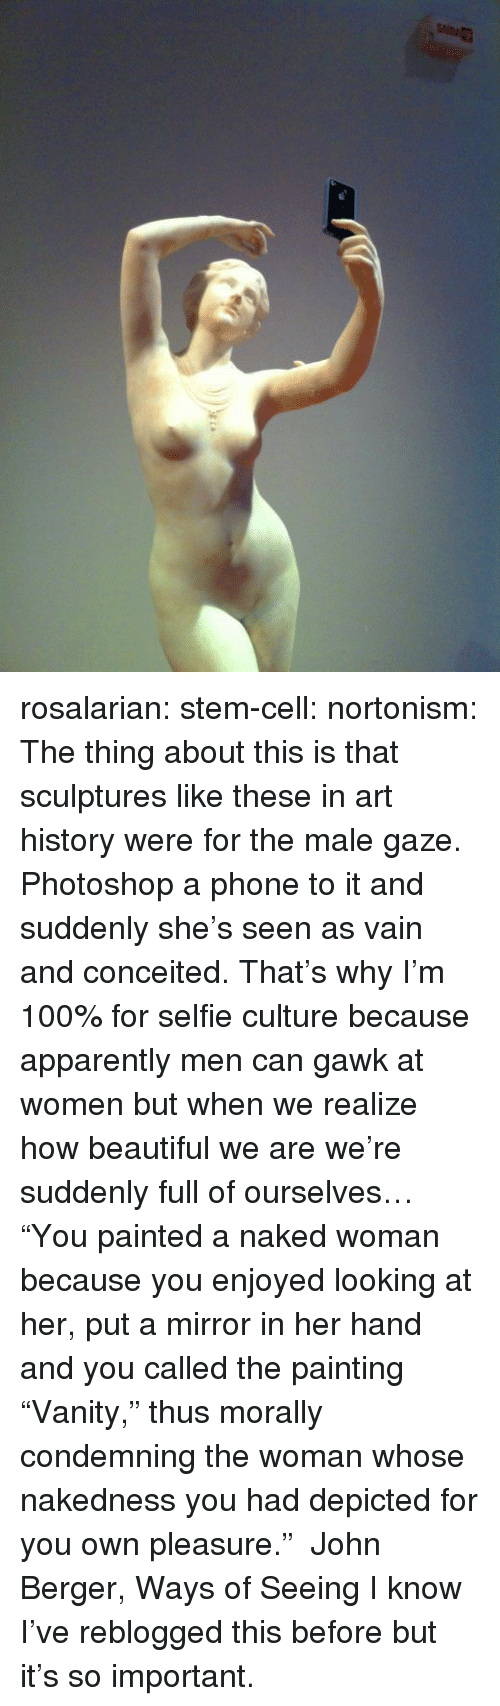 "You Called: rosalarian:  stem-cell:  nortonism:  The thing about this is that sculptures like these in art history were for the male gaze. Photoshop a phone to it and suddenly she's seen as vain and conceited. That's why I'm 100% for selfie culture because apparently men can gawk at women but when we realize how beautiful we are we're suddenly full of ourselves…  ""You painted a naked woman because you enjoyed looking at her, put a mirror in her hand and you called the painting ""Vanity,"" thus morally condemning the woman whose nakedness you had depicted for you own pleasure."" ― John Berger, Ways of Seeing  I know I've reblogged this before but it's so important."